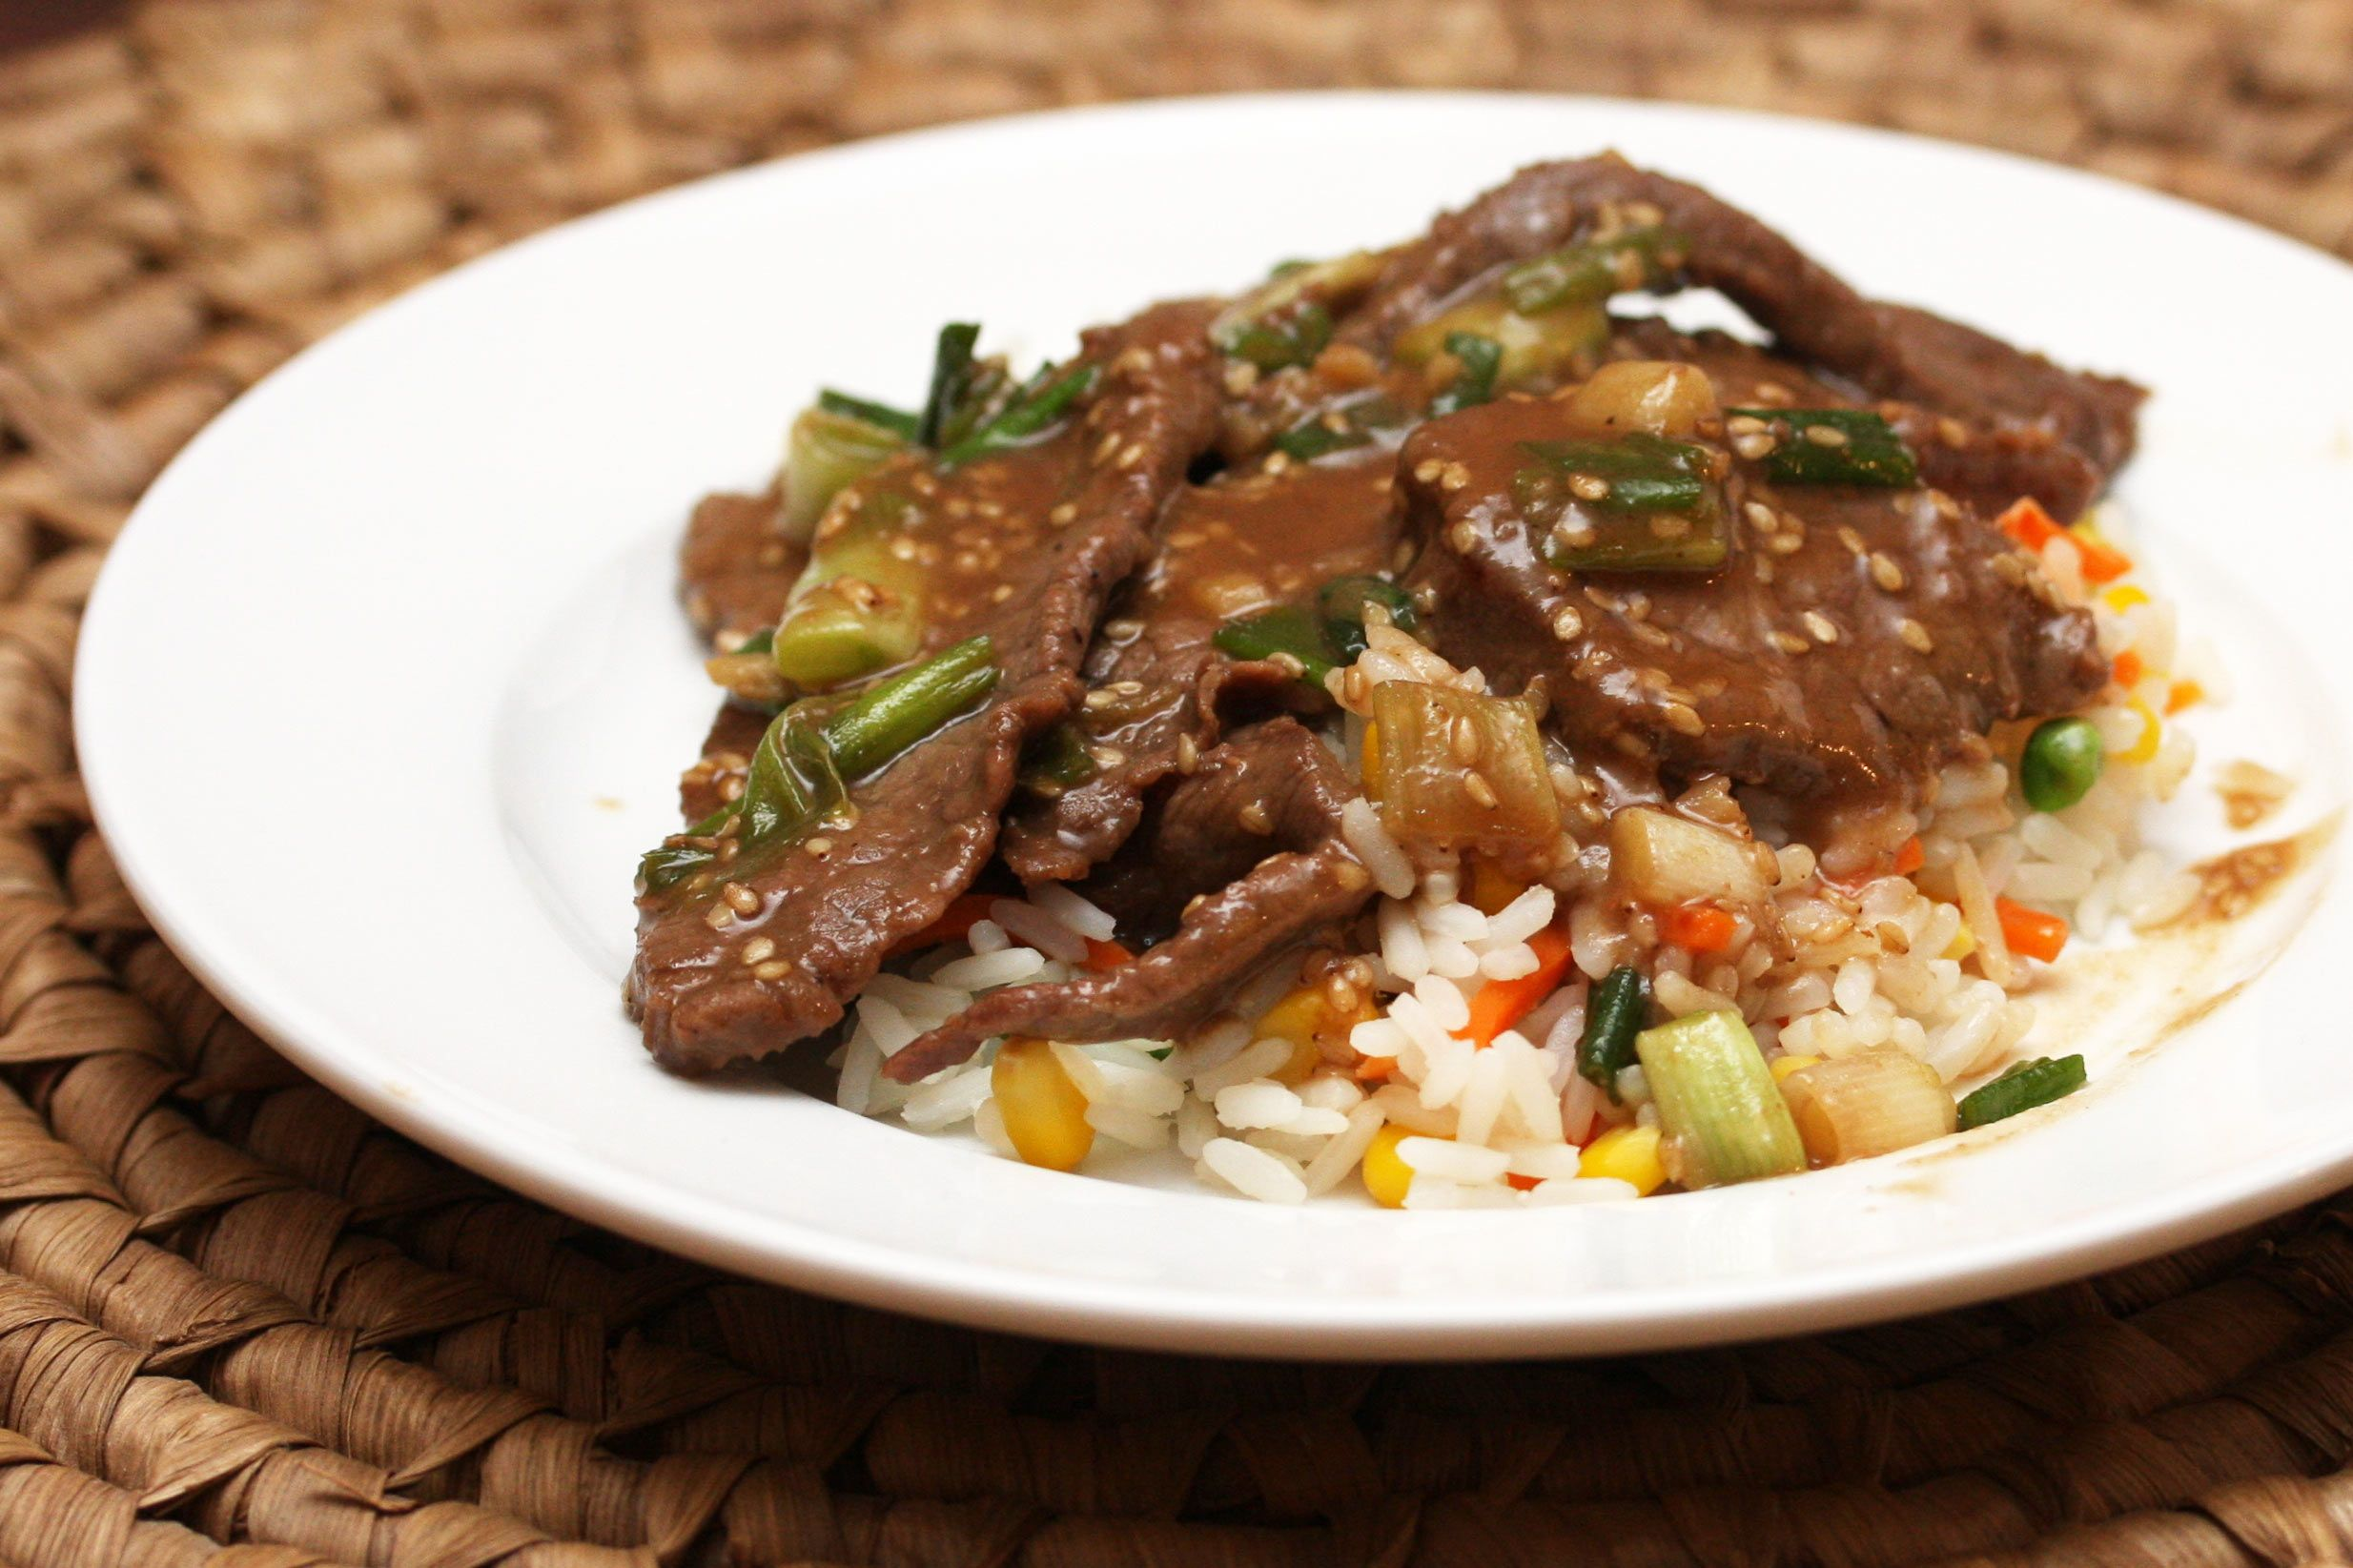 Slow Cooker Round Steak With Vegetables and Gravy